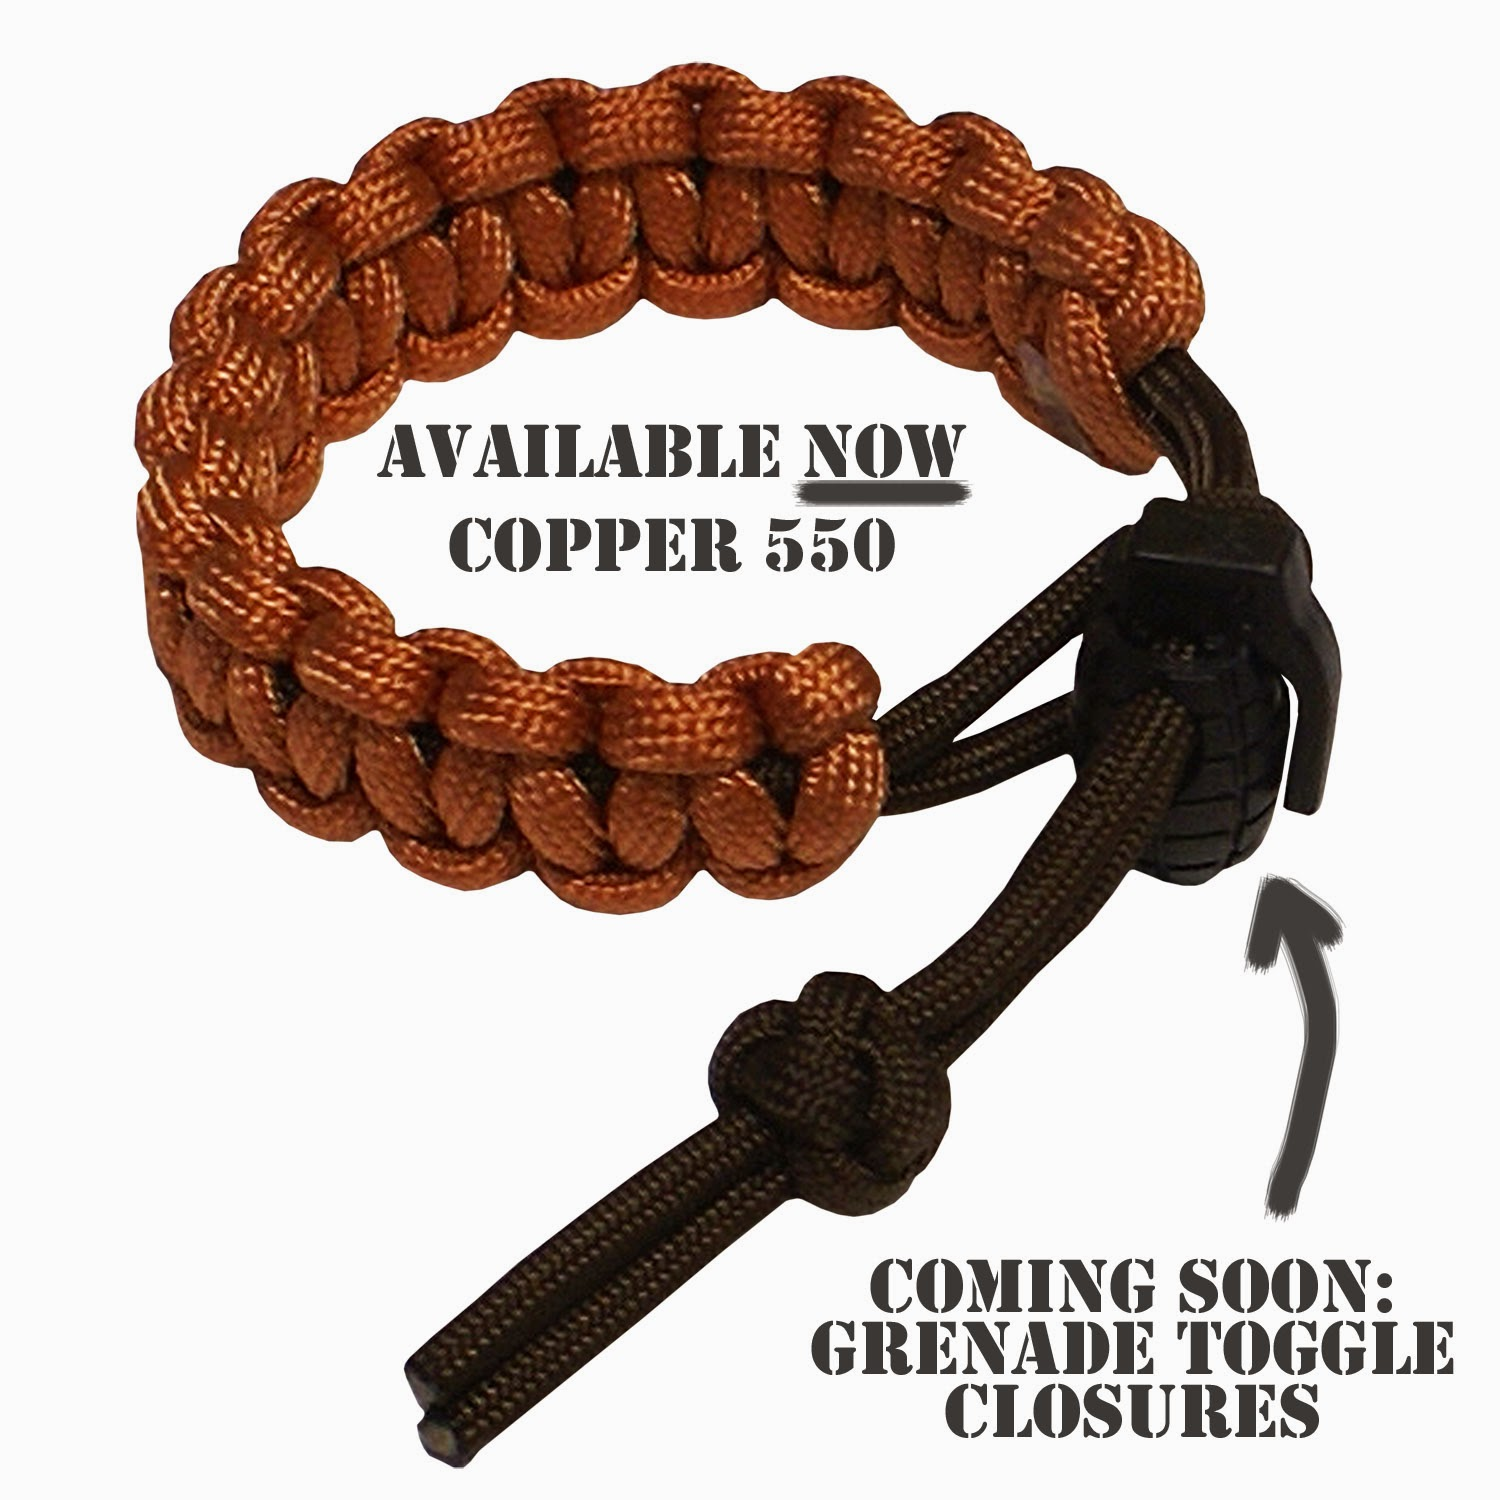 Copper 550 Parachute Cord and Grenade Toggle Closure